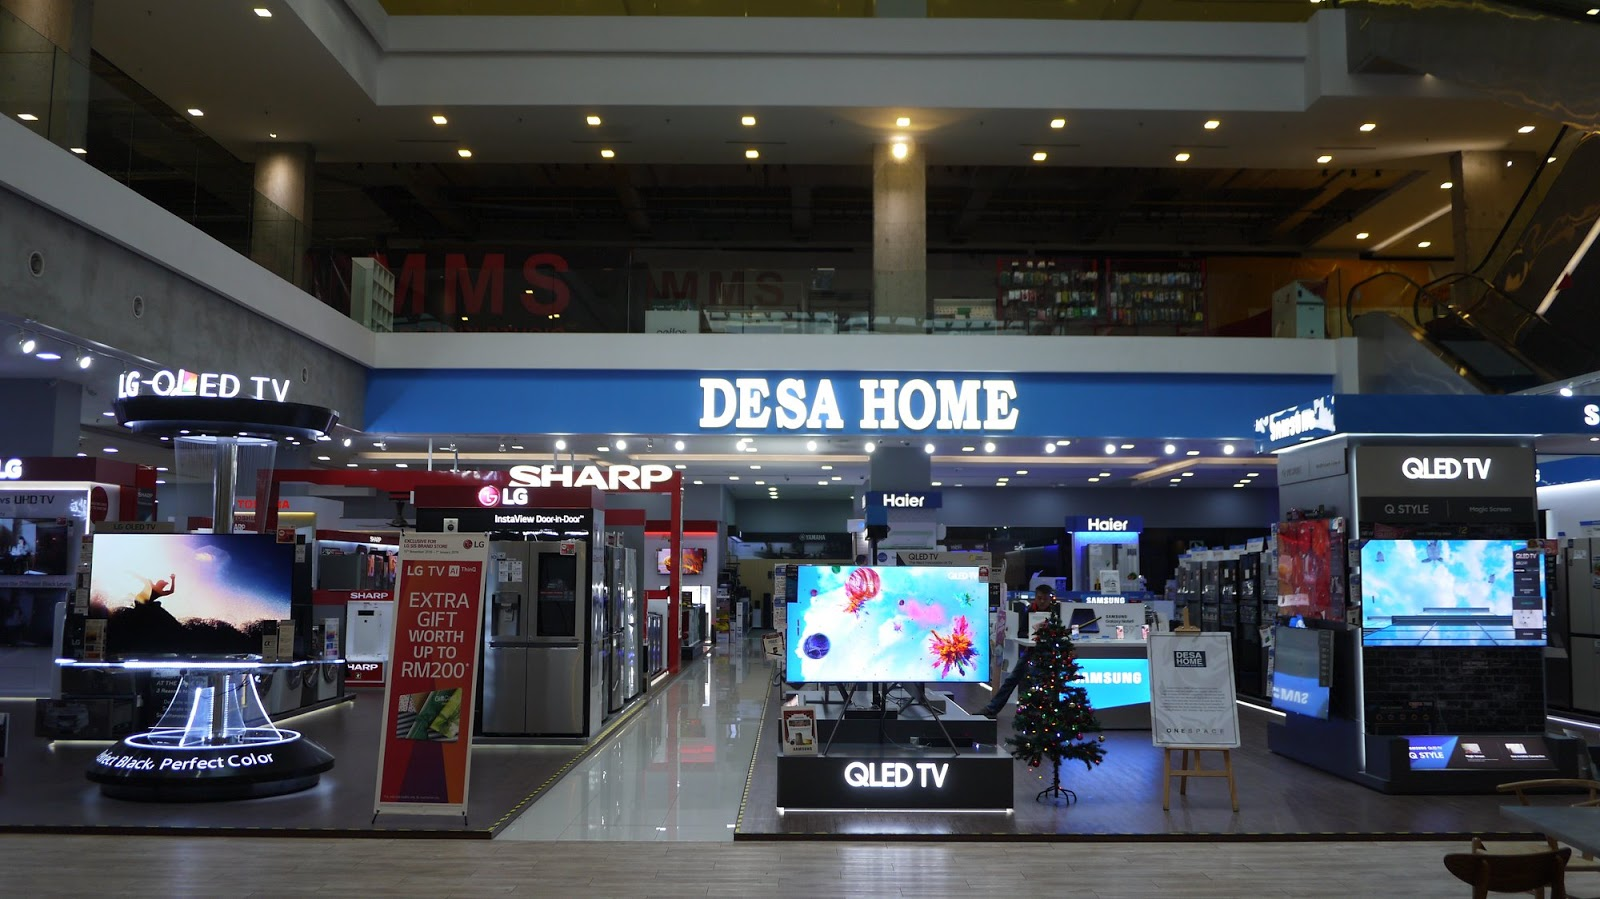 desa home one city s branch is very huge and well organised occupies a 1 394sq m space we can find home entertainment systems including audiovisual  [ 1600 x 899 Pixel ]